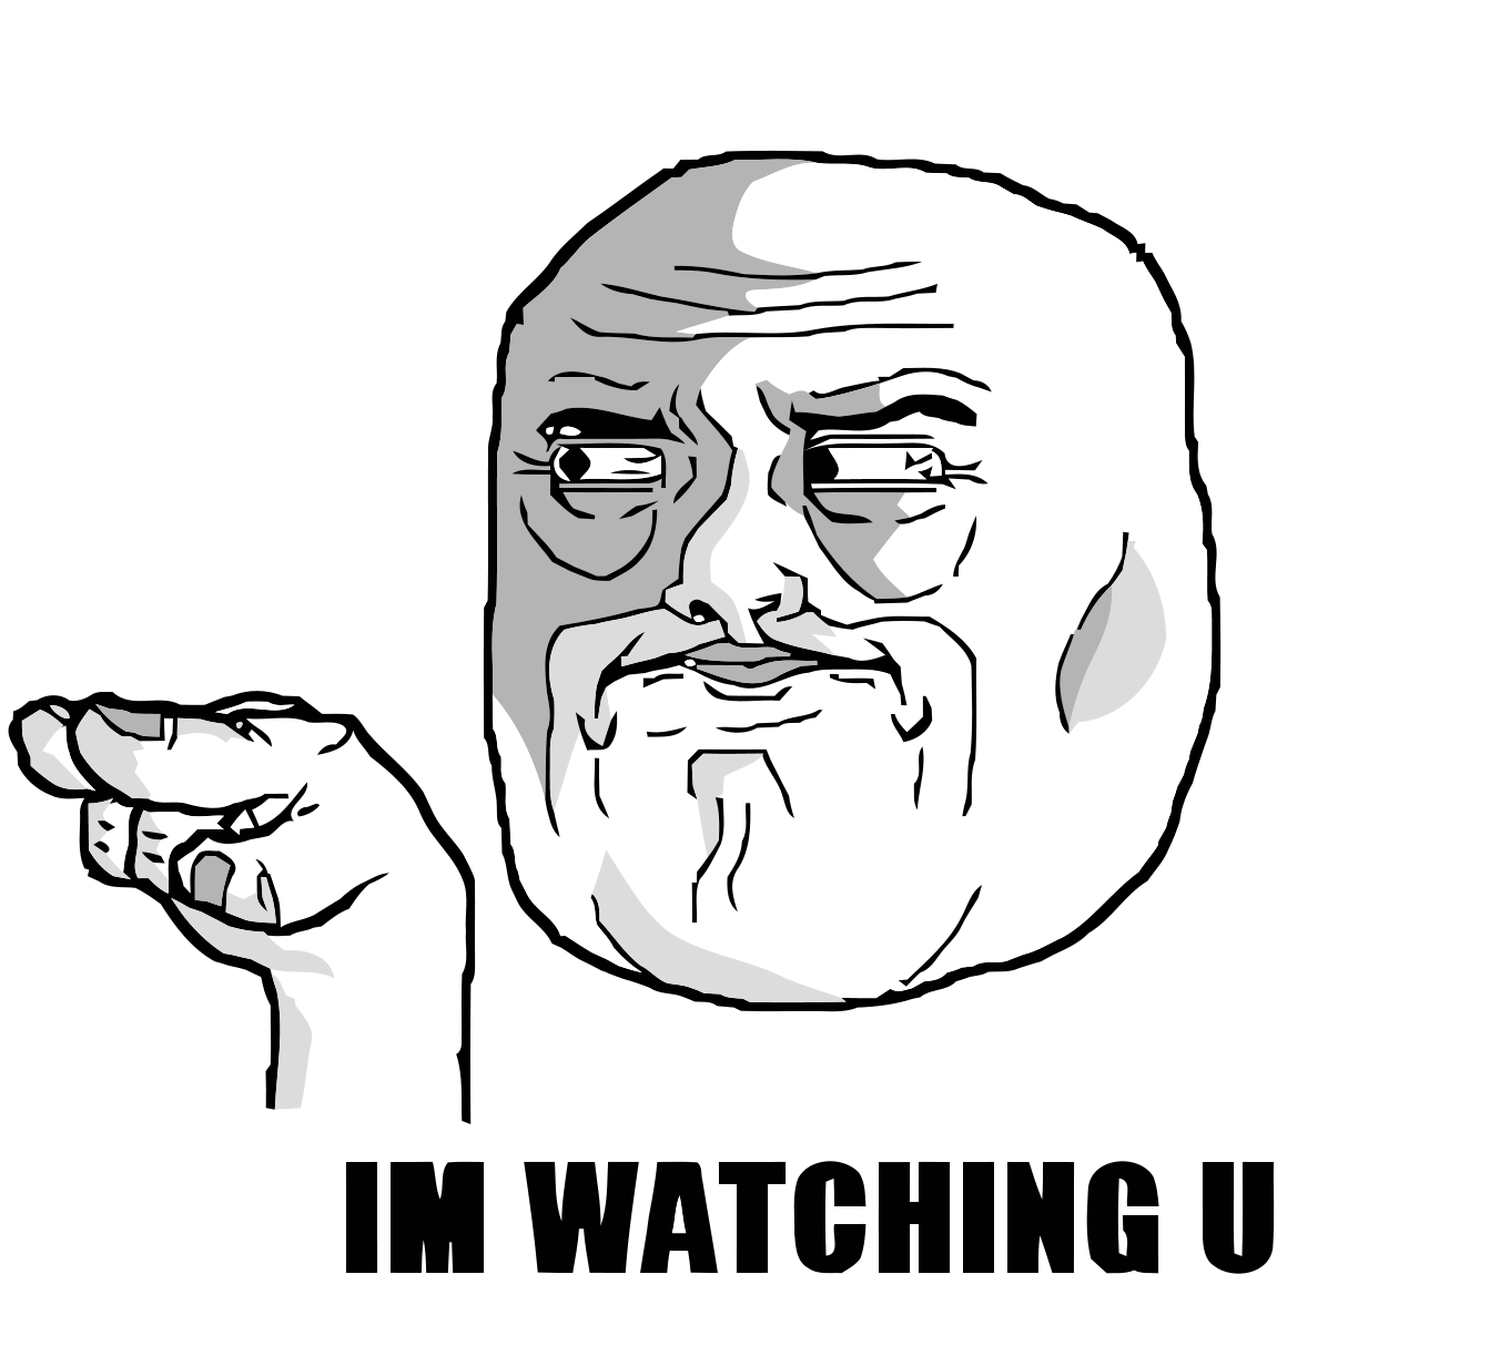 Funny Meme Smileys : All troll meme faces watching u face on the